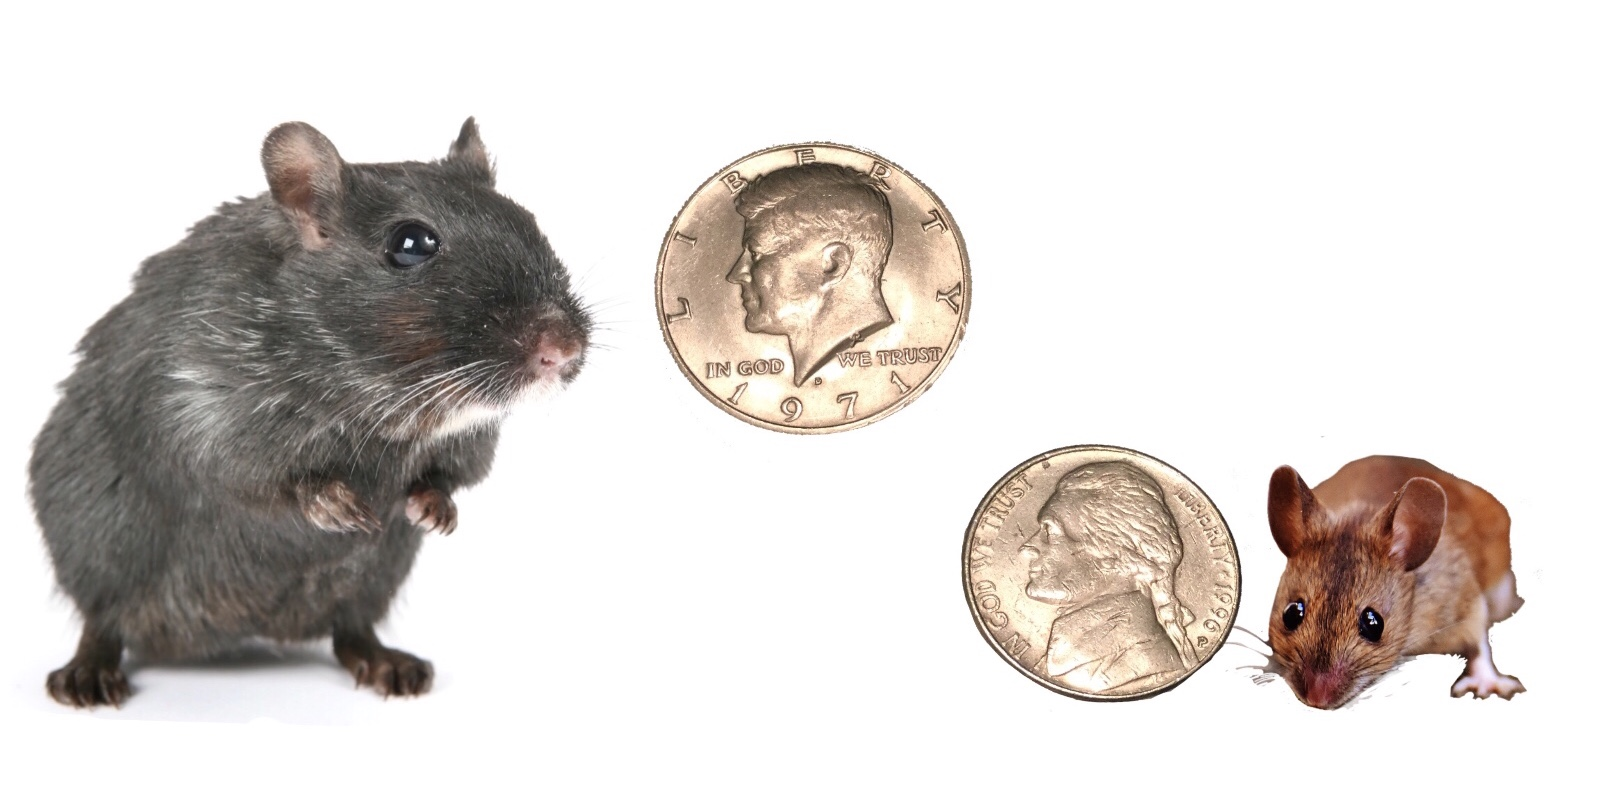 Mouse and a rat small enough to get thru coin sized hole